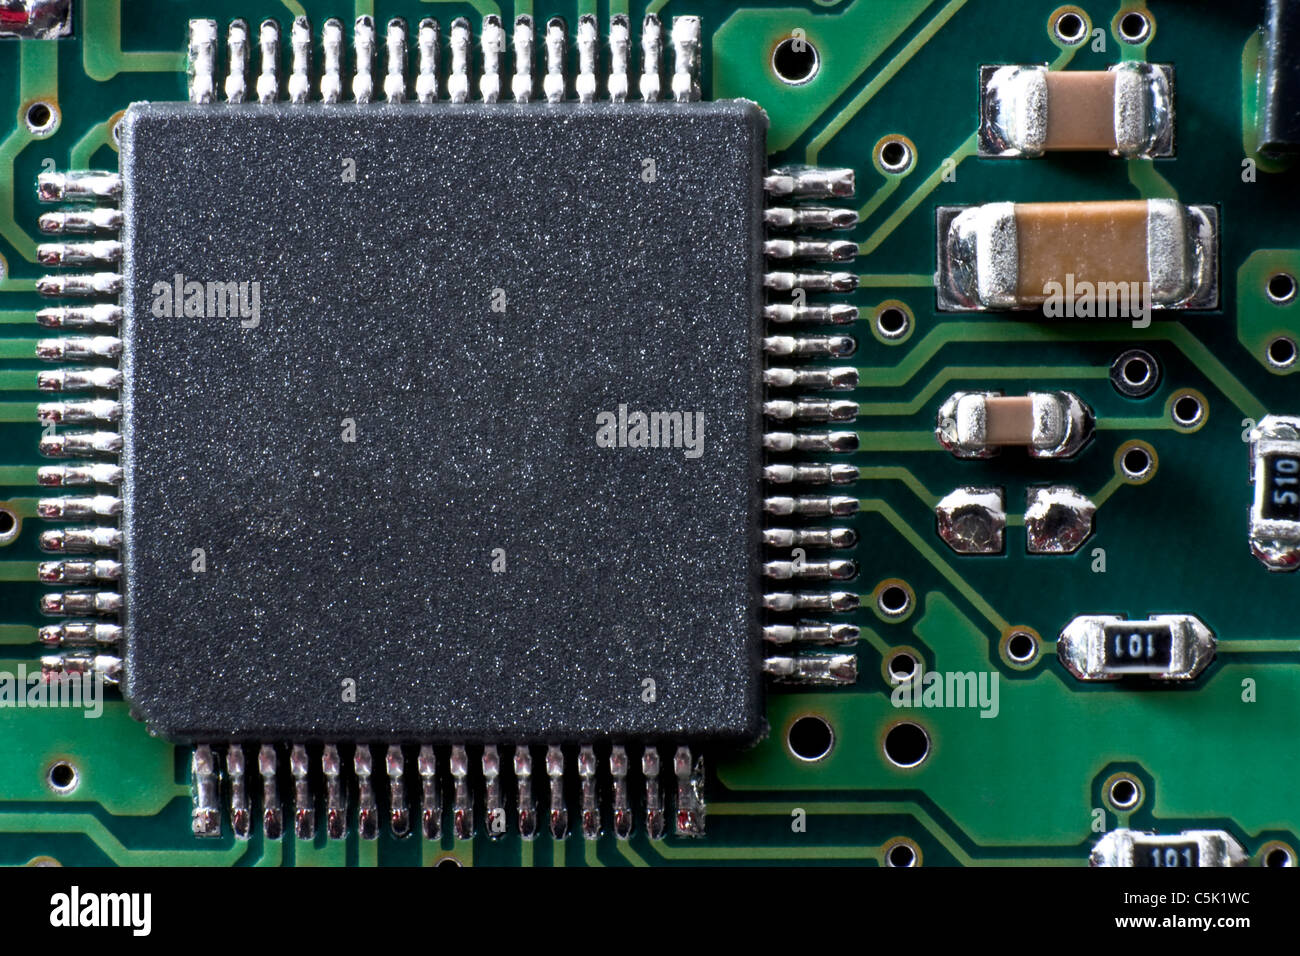 green circuit board with ic and other electronic components space rh alamy com  Circuit Board with Binary